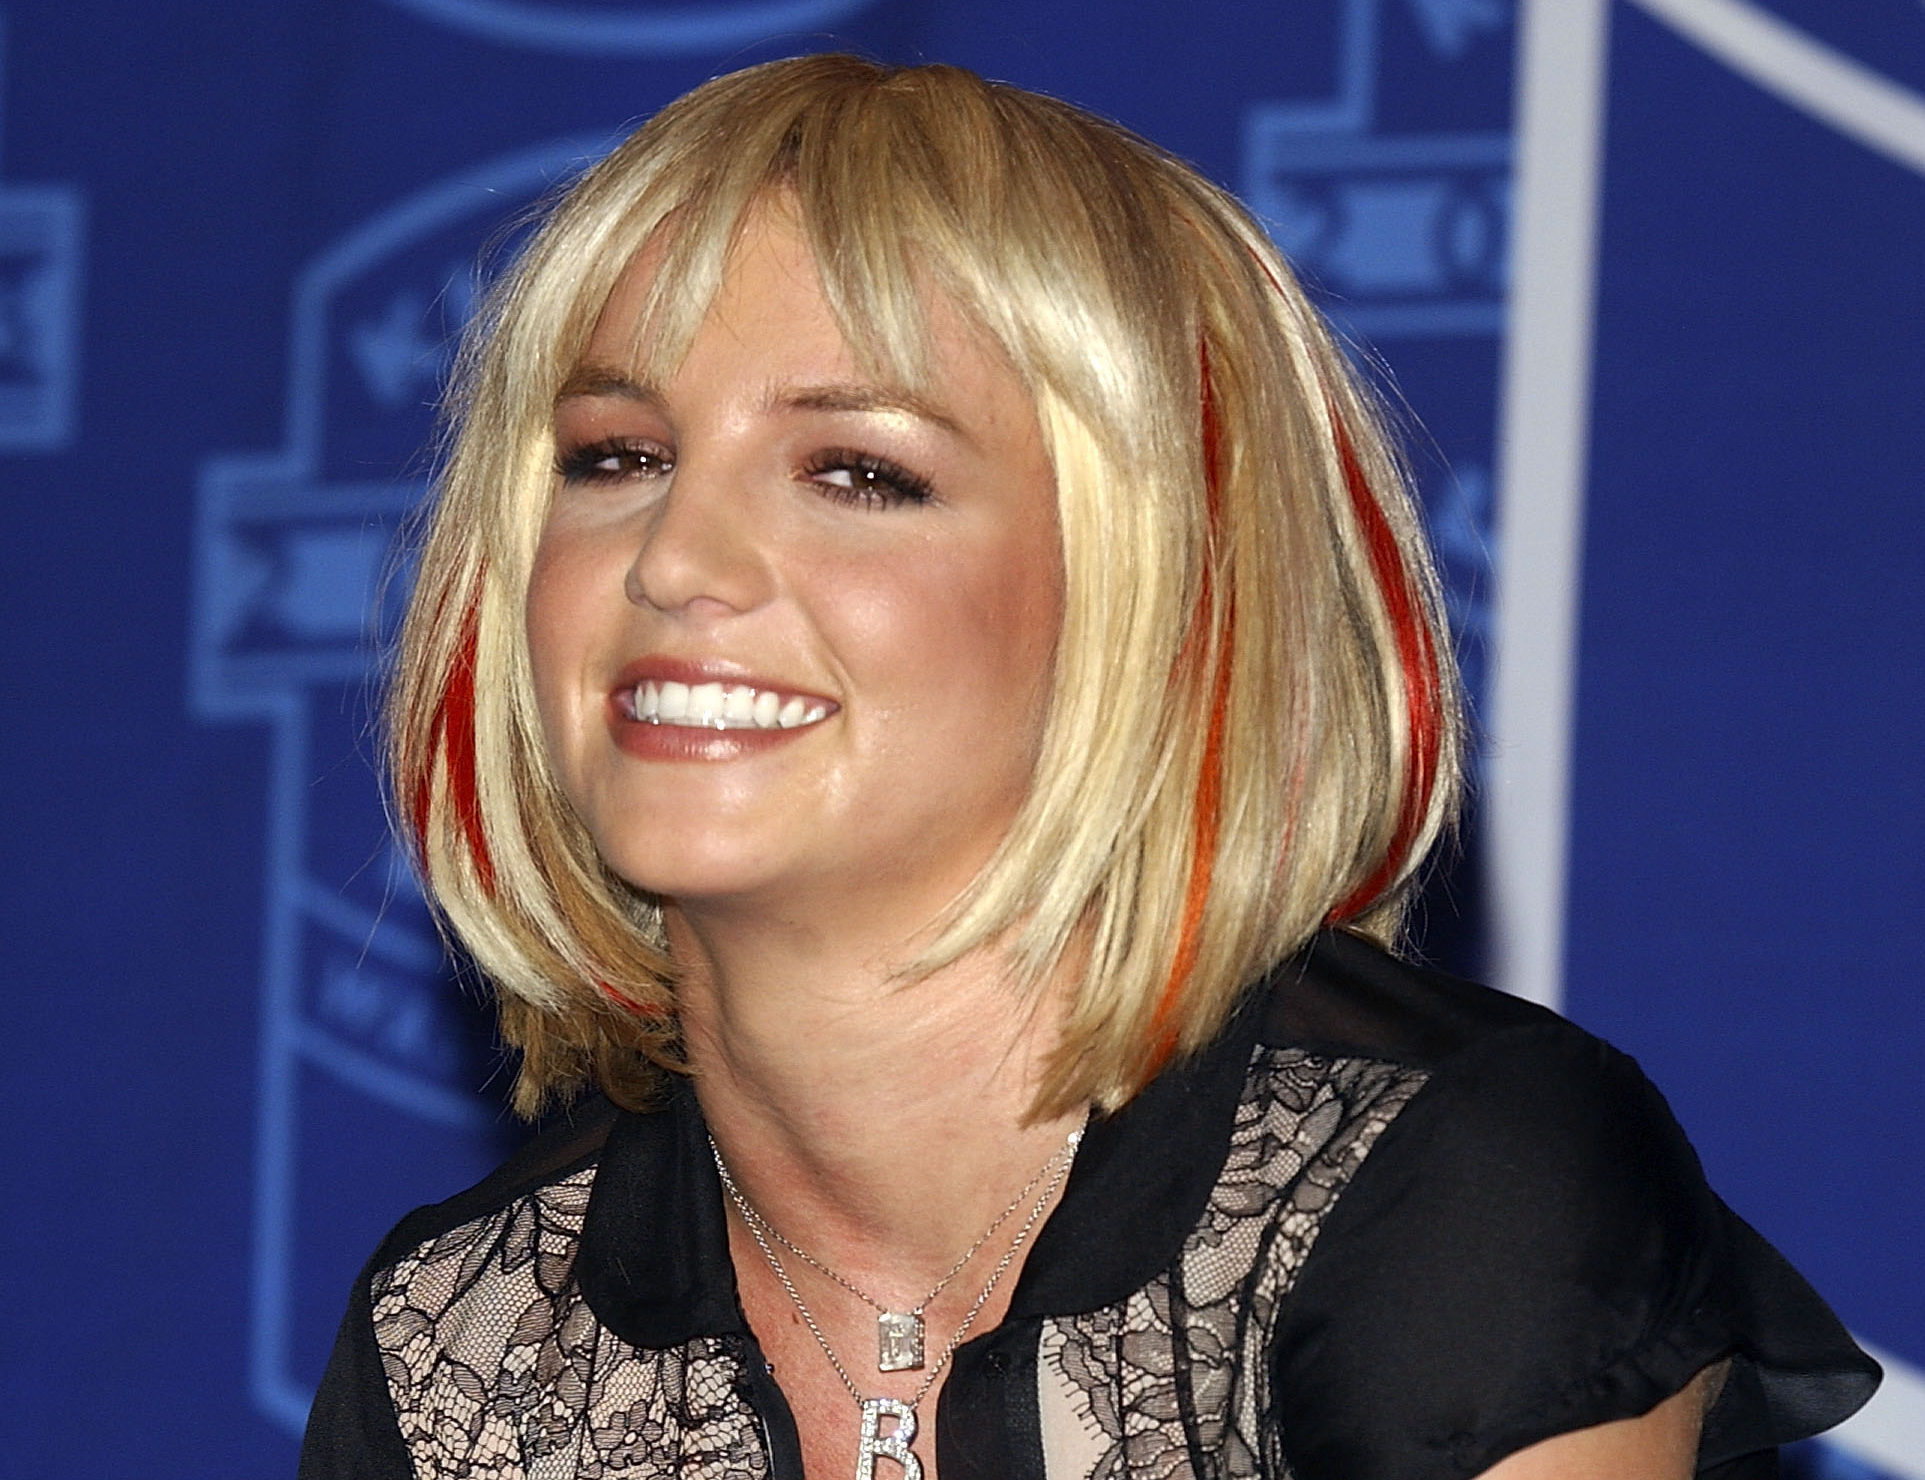 Britney Spears' son's new hair color is reminding us of his mom's past look